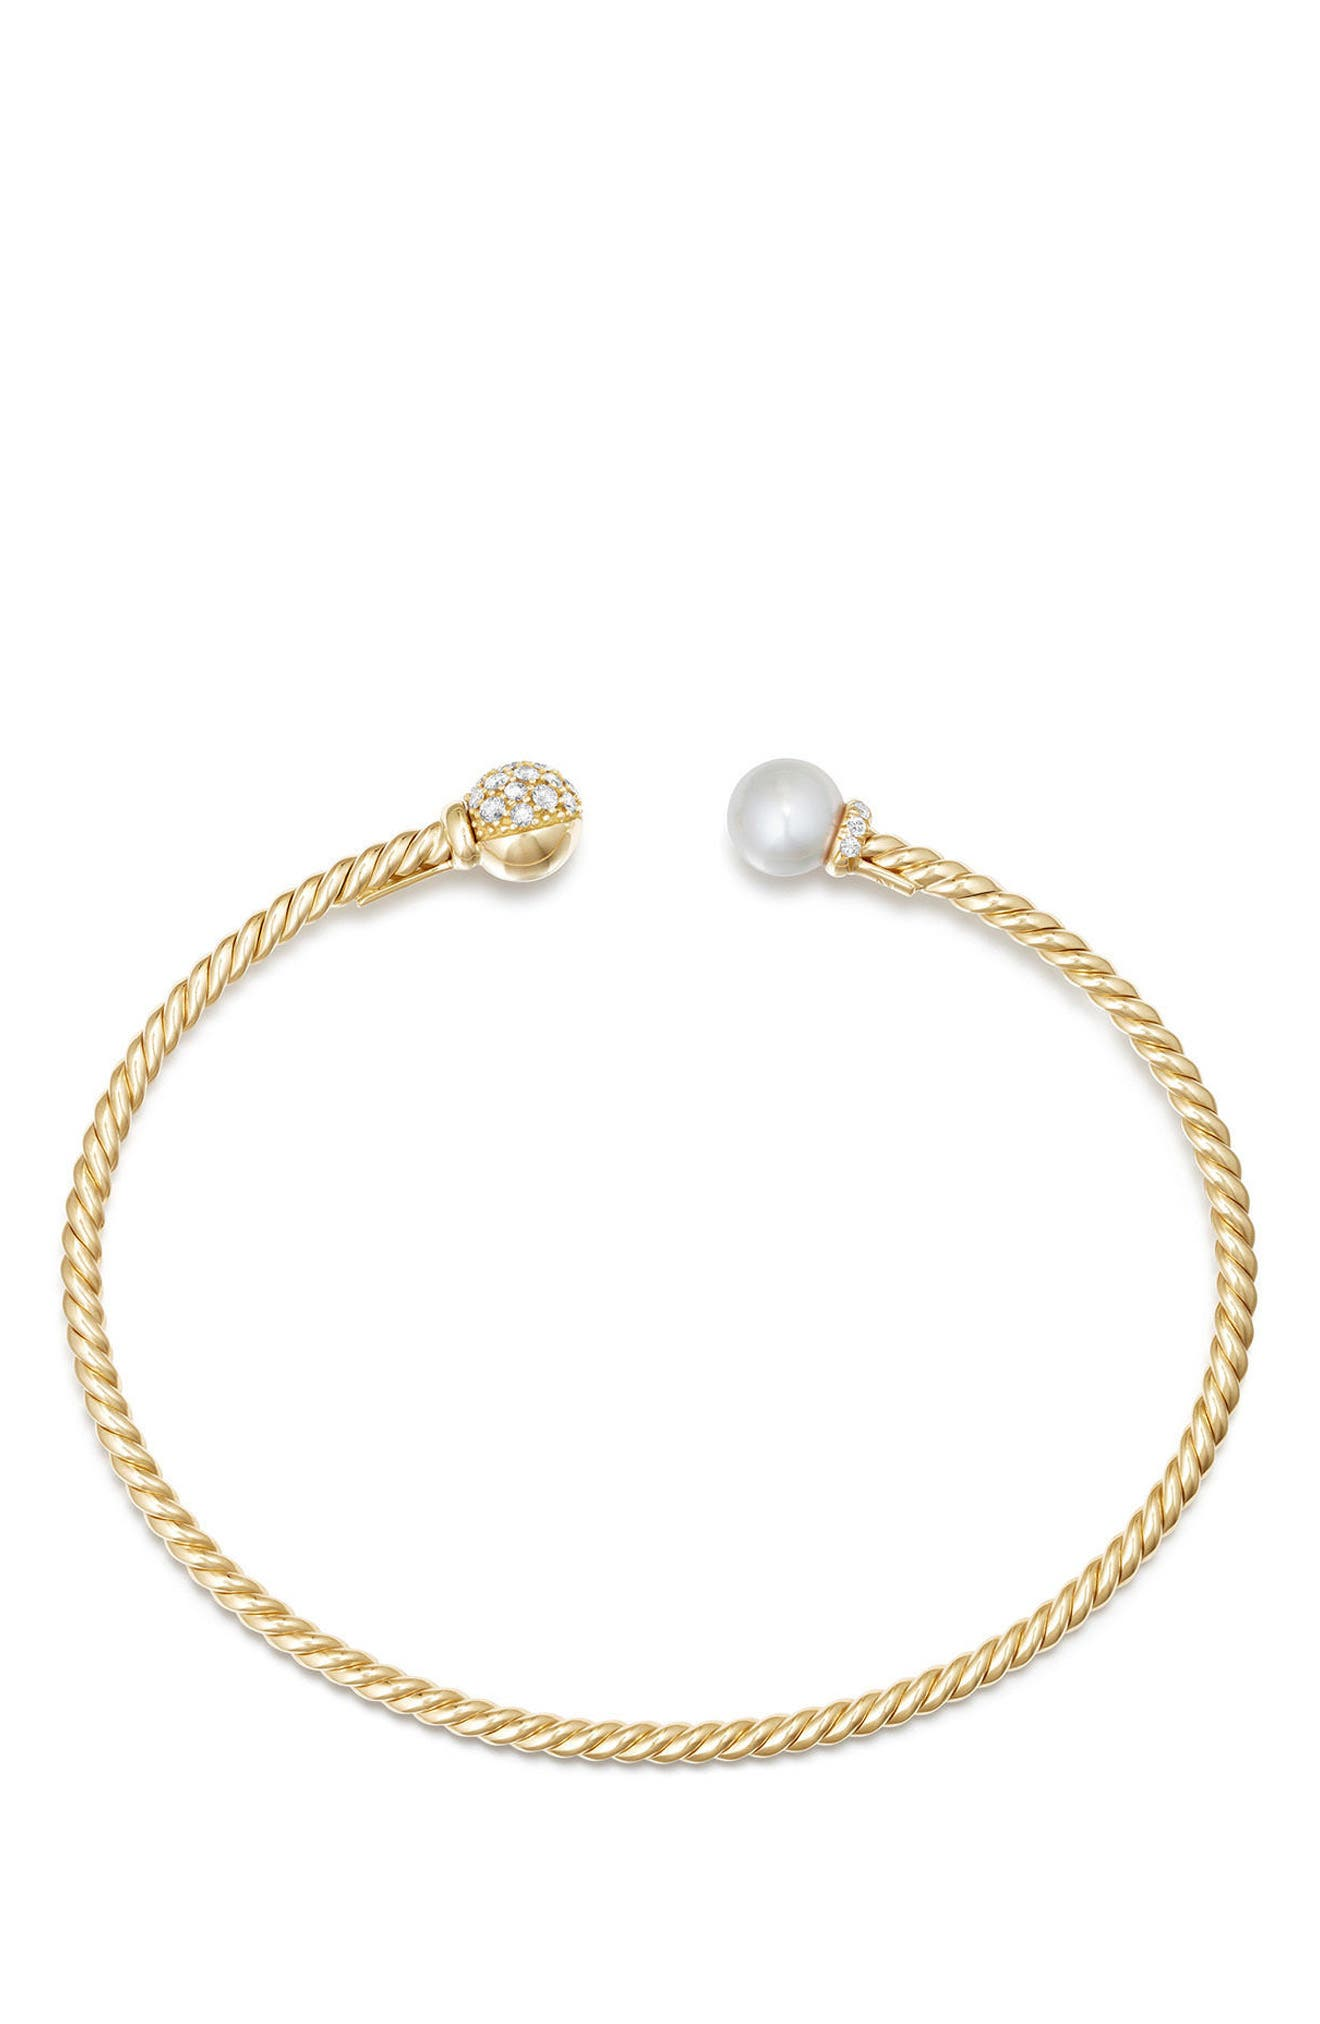 Solari Bead & Pearl Bracelet with Diamonds in 18K Gold,                             Alternate thumbnail 2, color,                             YELLOW GOLD/ DIAMOND/ PEARL